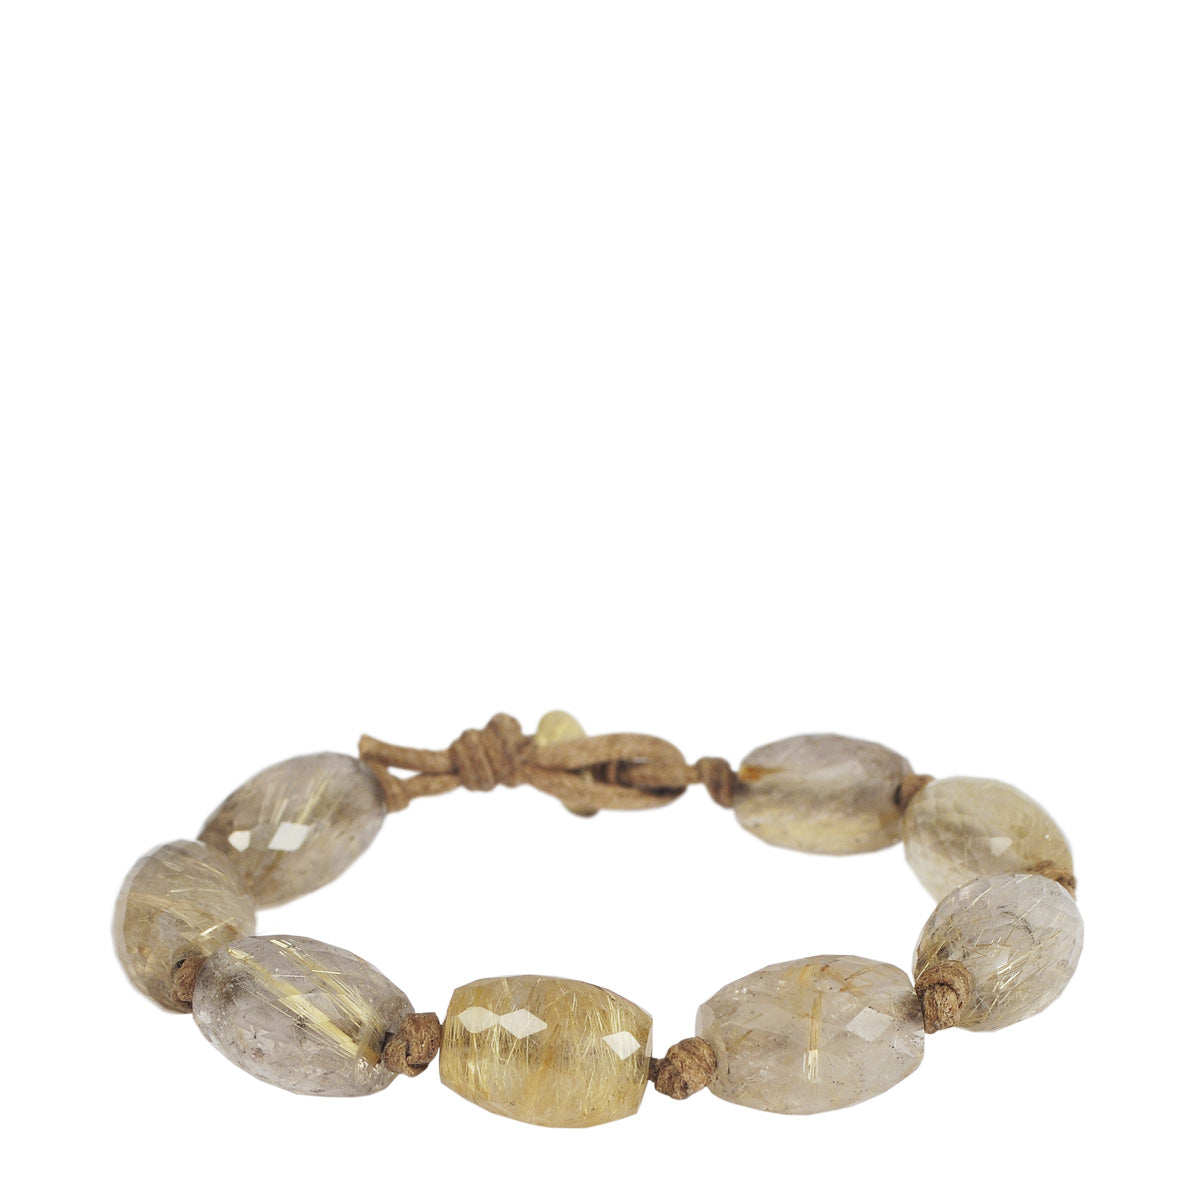 18K Gold Large Rutilated Quartz Beads on Cord